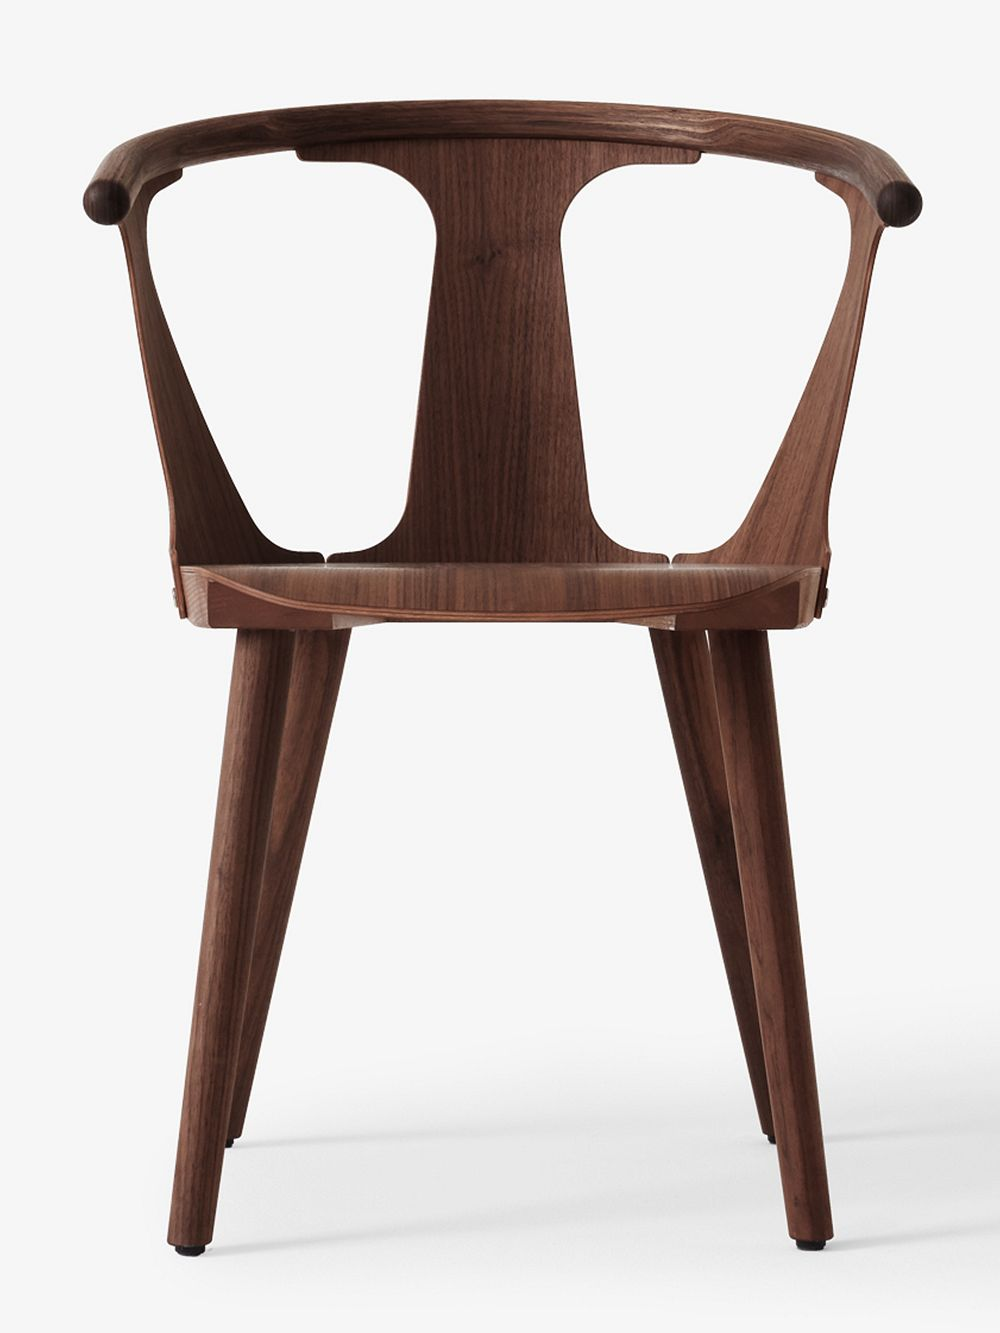 &Tradition In Between SK1 chair, smoked oak